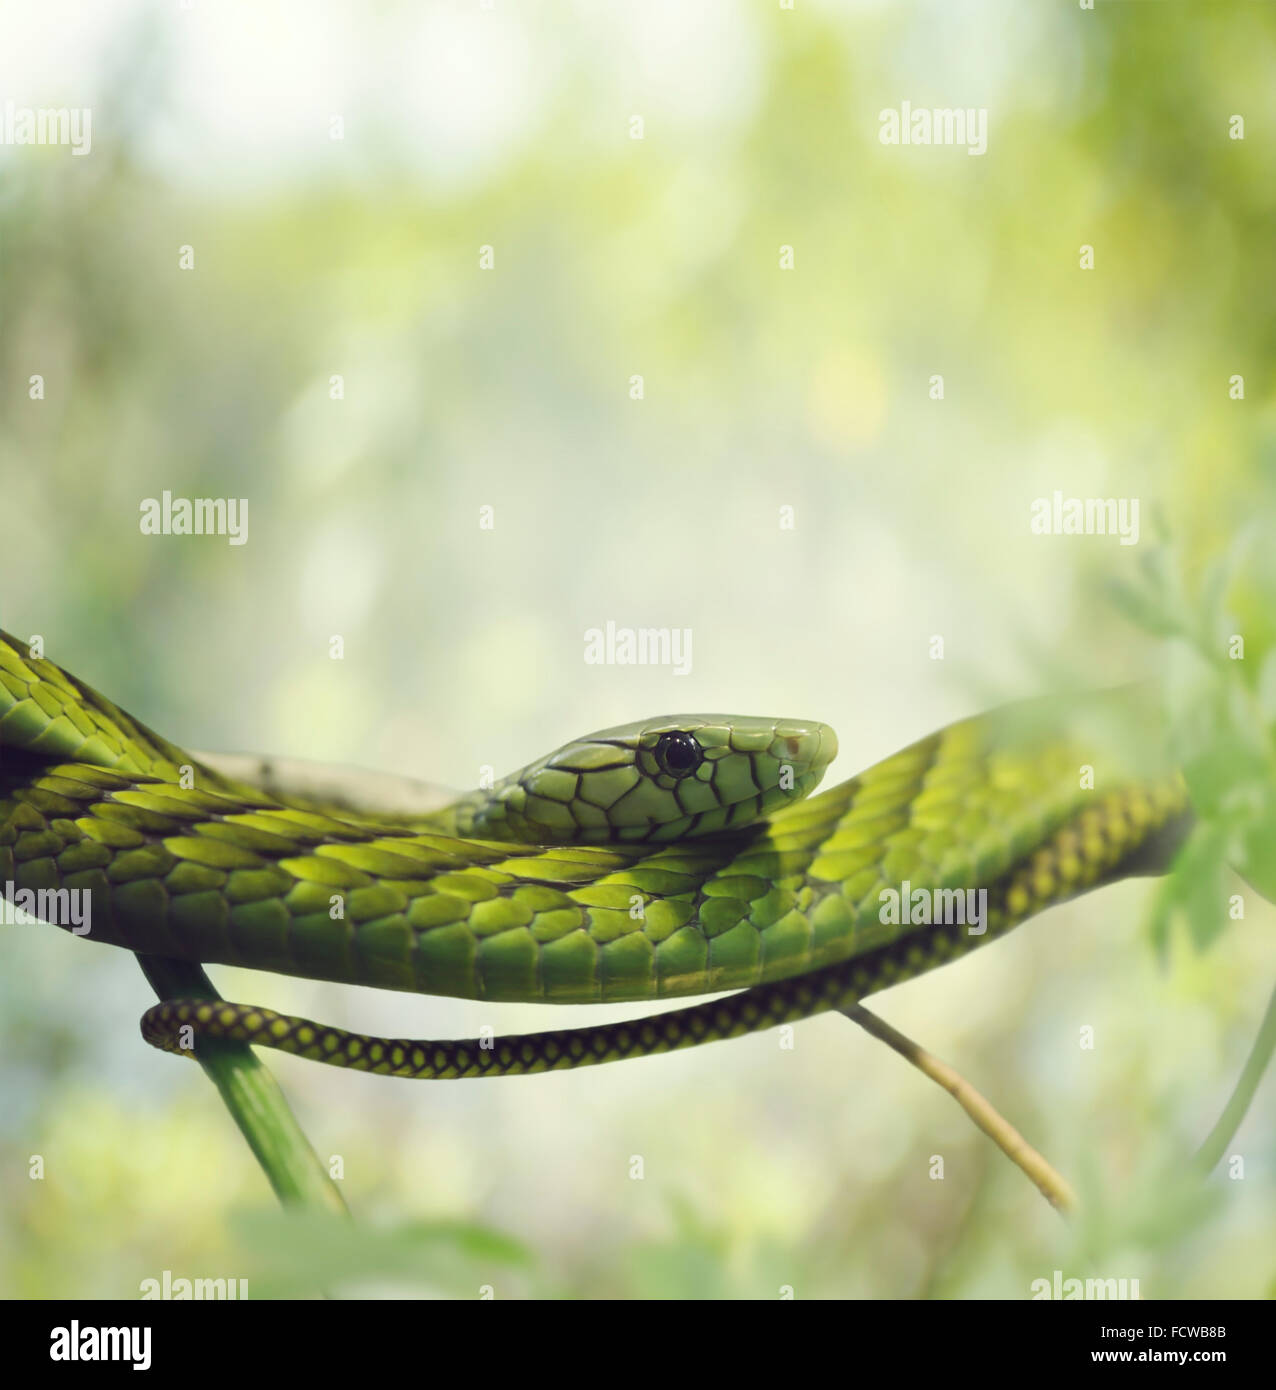 Green Mamba on the Branches - Stock Image